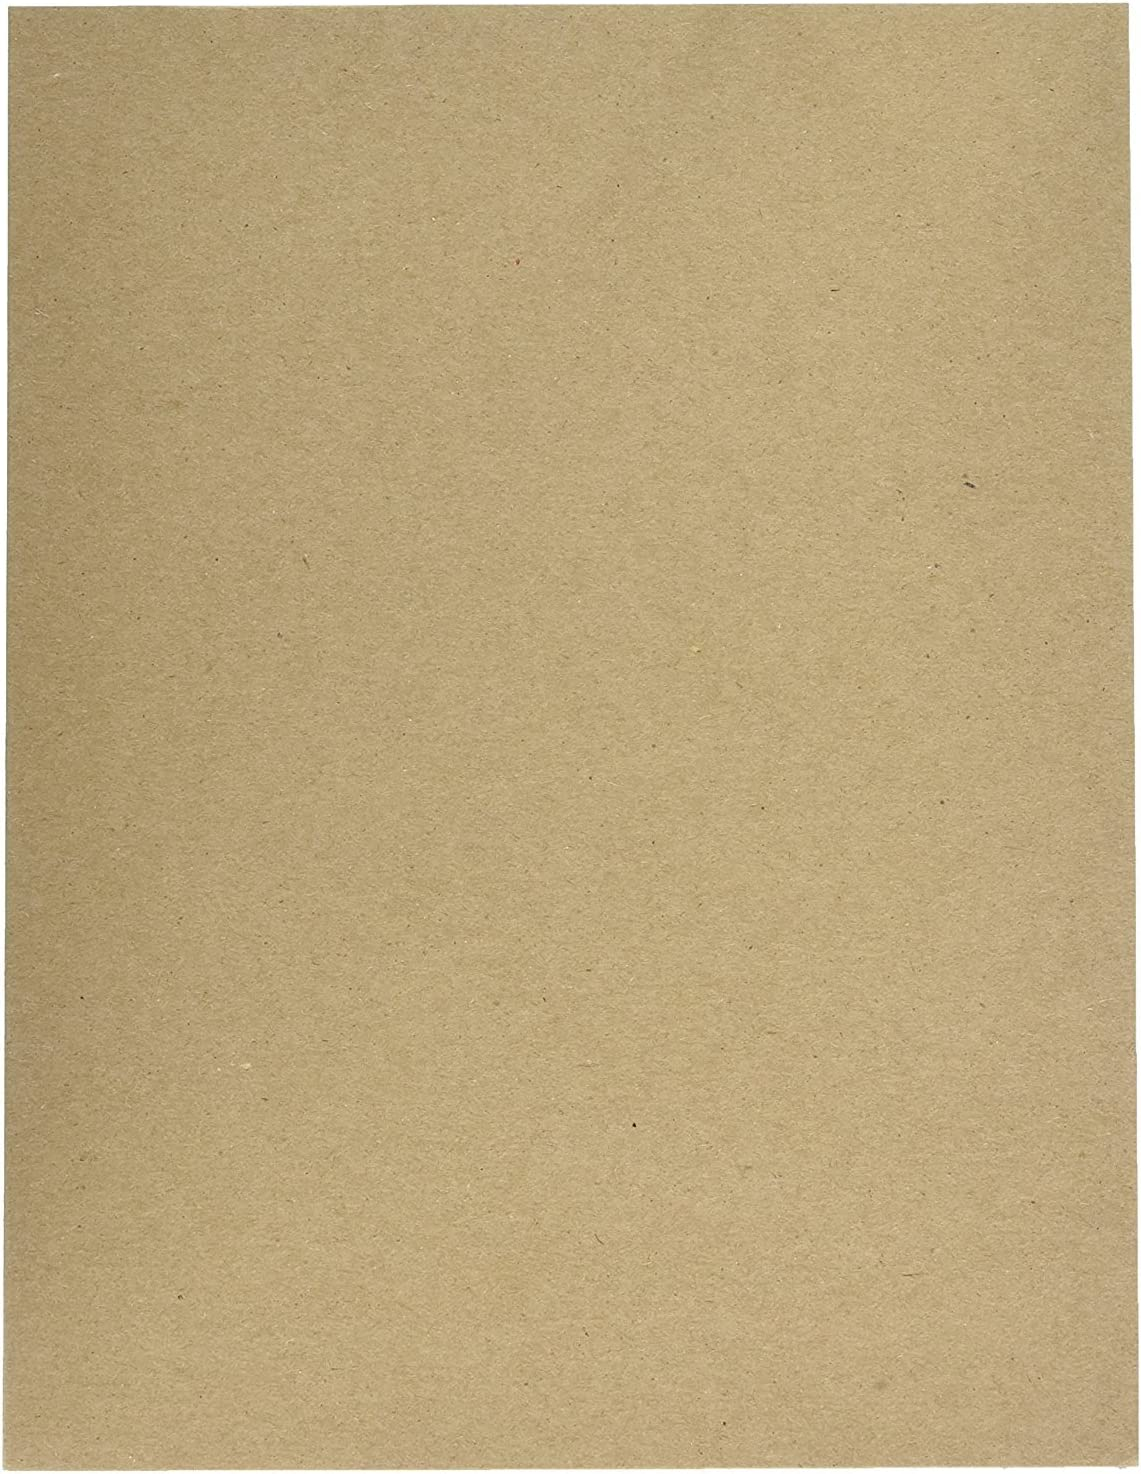 Cardboard Medium Weight Chipboard Sheets 50 Chipboards Per Pack. 12 X 18 Inches